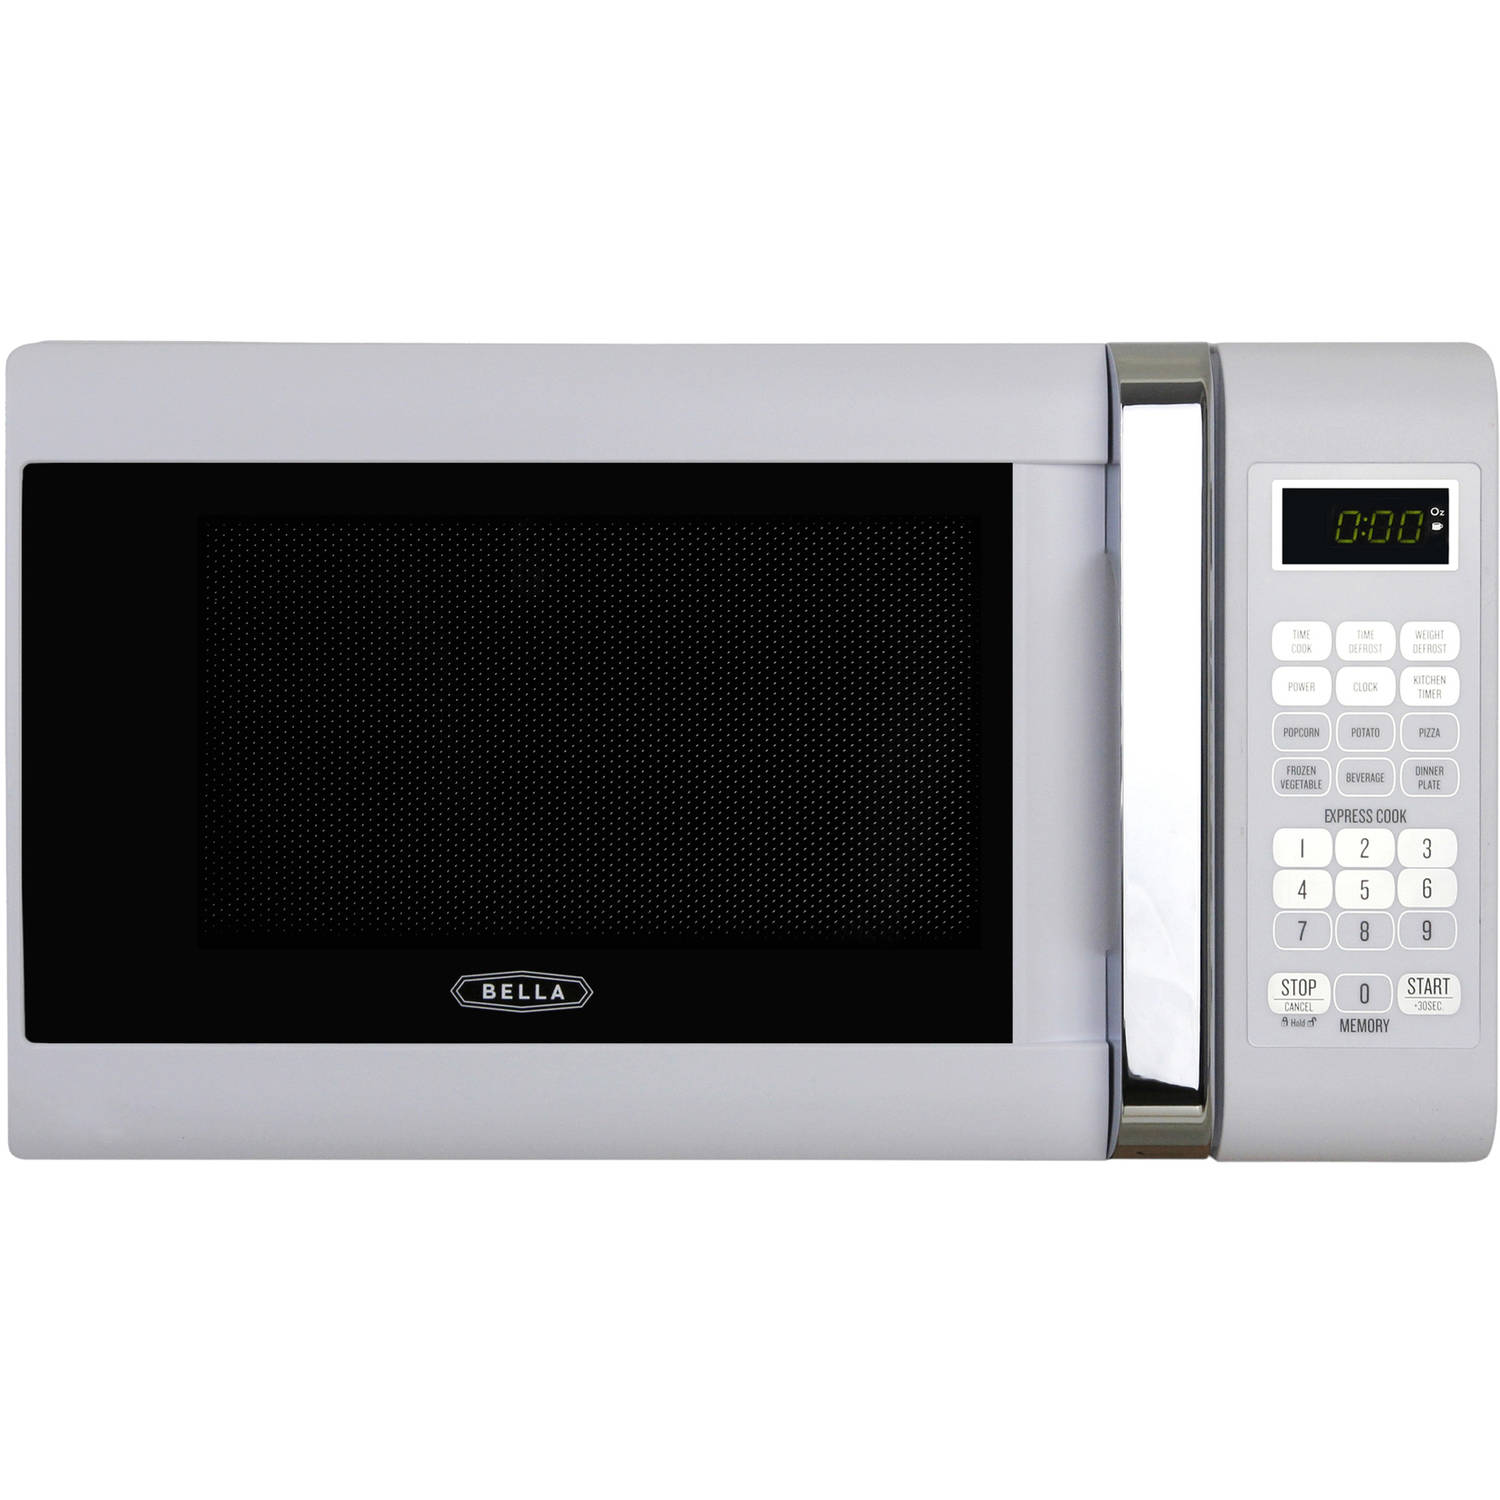 Bella .7 Cubic Foot 700 Watt Microwave Oven in White with Chrome